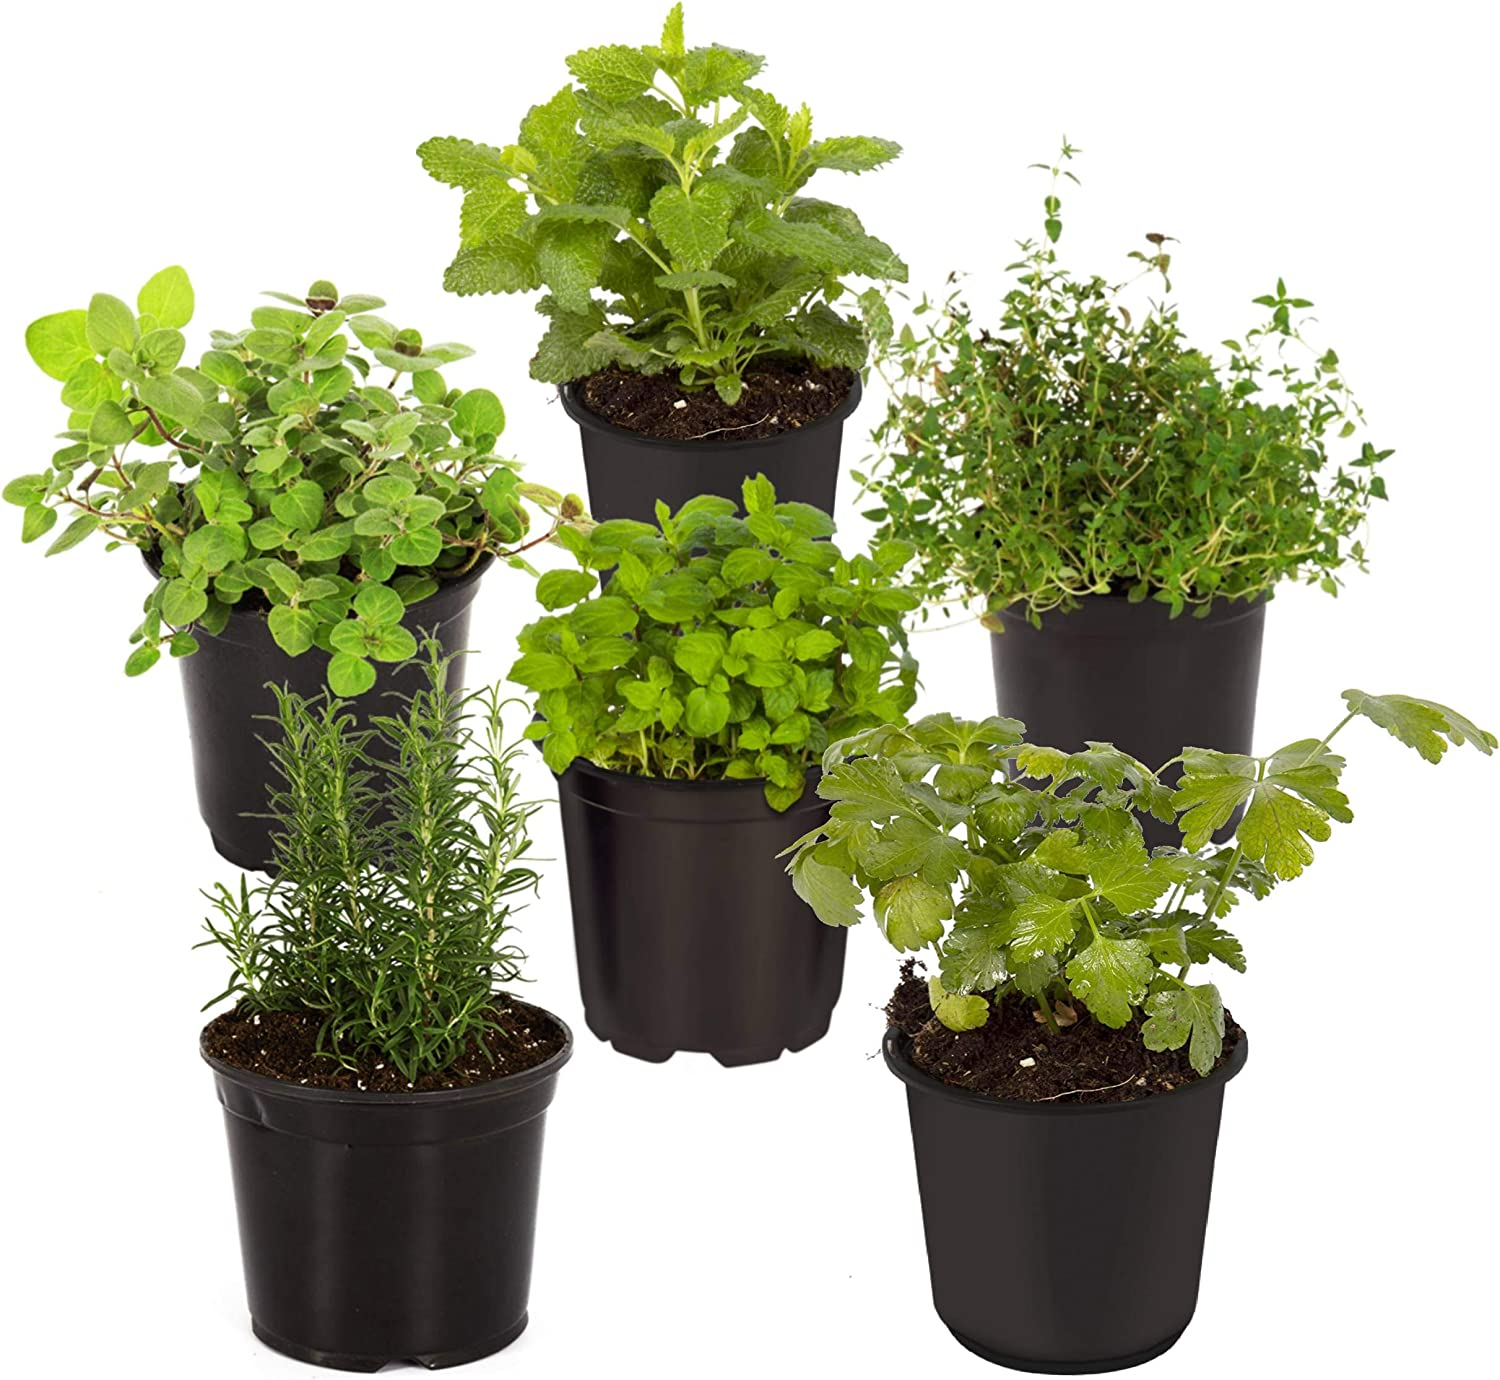 """The Three Company 4"""" Assorted Herbs (6 Per Pack) (Rosemary, Oregano, Lavender, Thyme, Chamomile, Lemon Balm), Aromatic and Edible"""